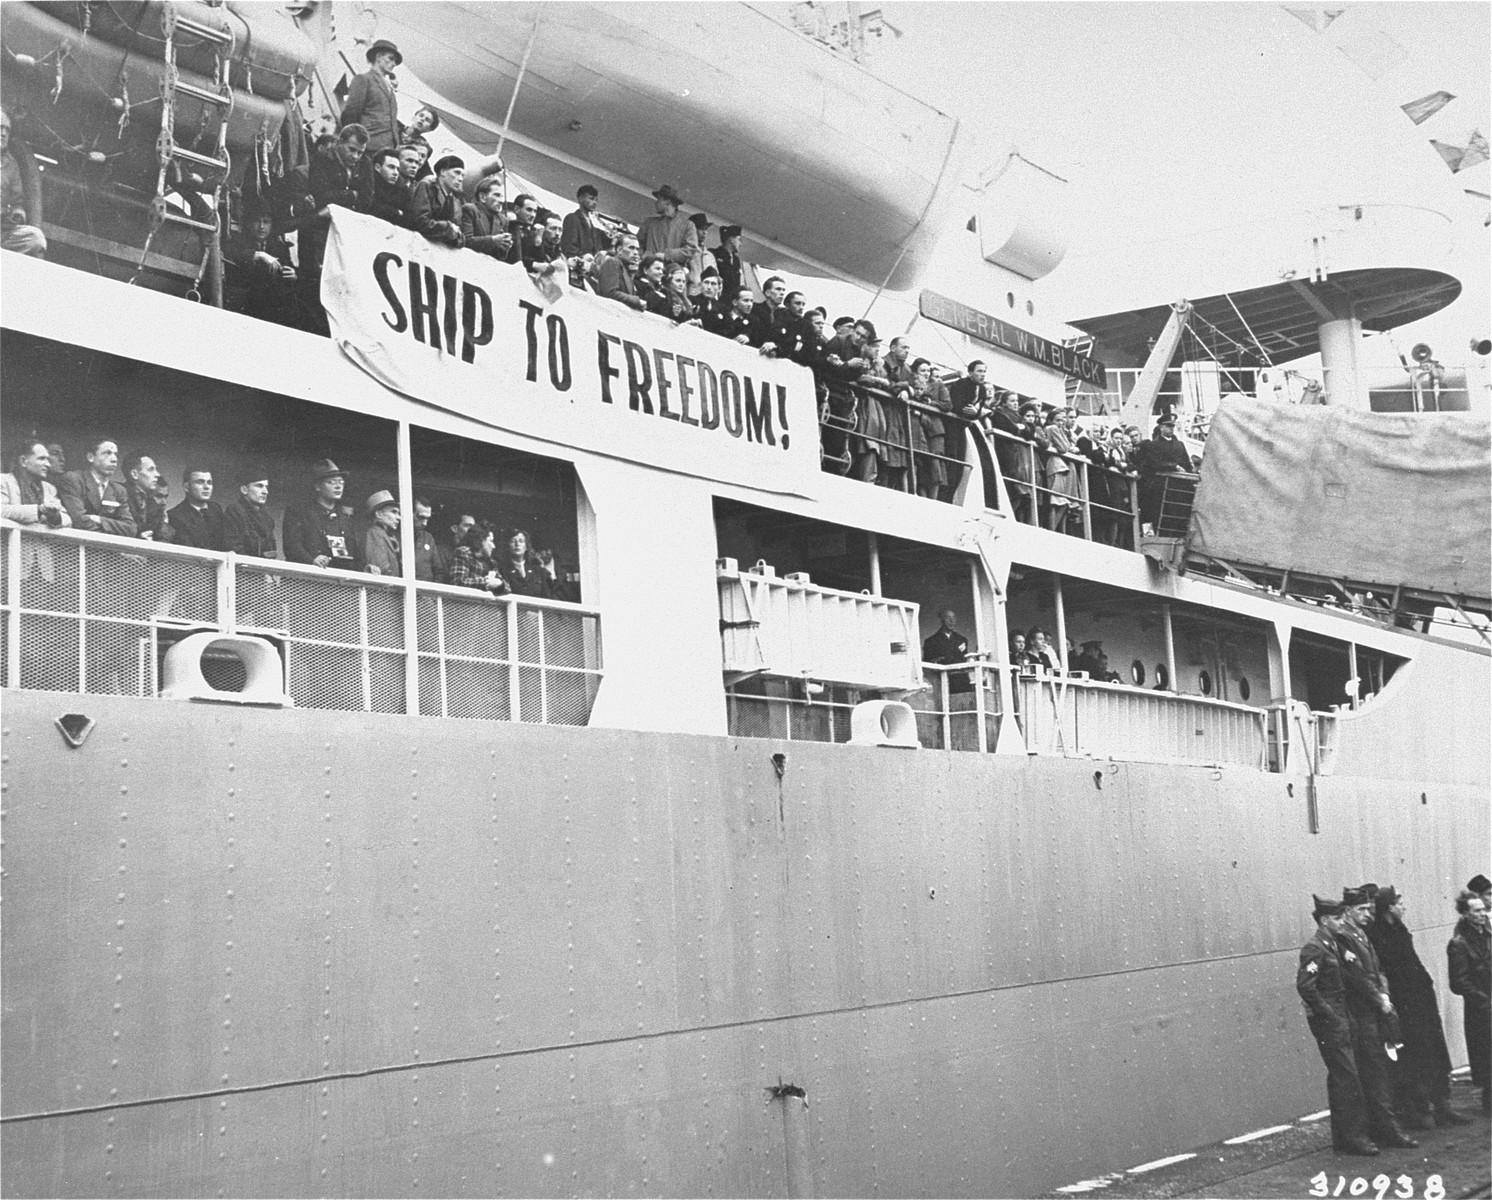 Displaced persons of various nationalities seeking to immigrate to the U.S. line the decks of the General Black as it leaves the port of Bremerhaven.